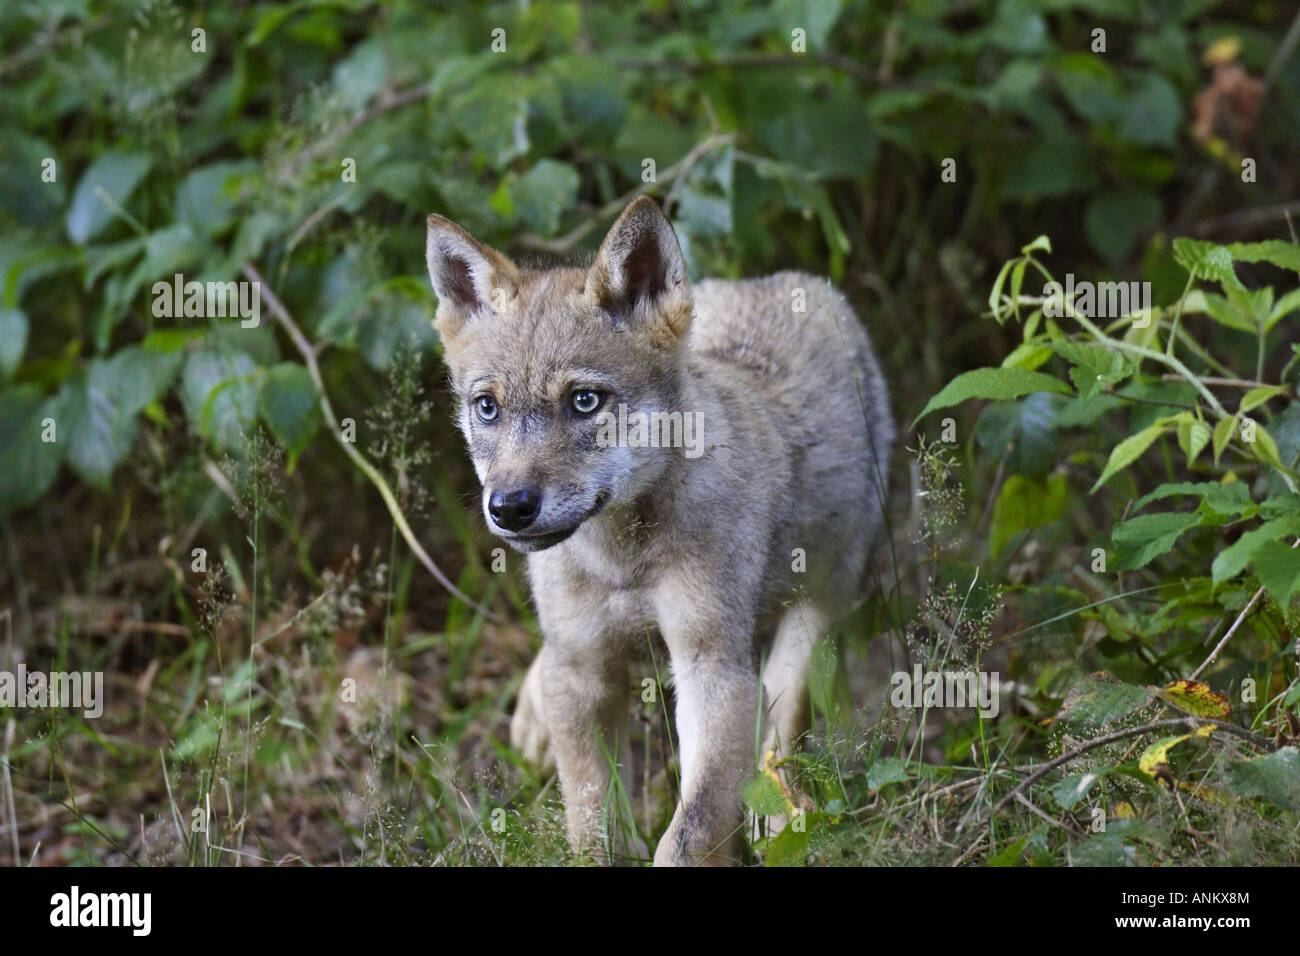 junger wolf wolf canis lupus baby kind stockfoto bild 15553987 alamy. Black Bedroom Furniture Sets. Home Design Ideas